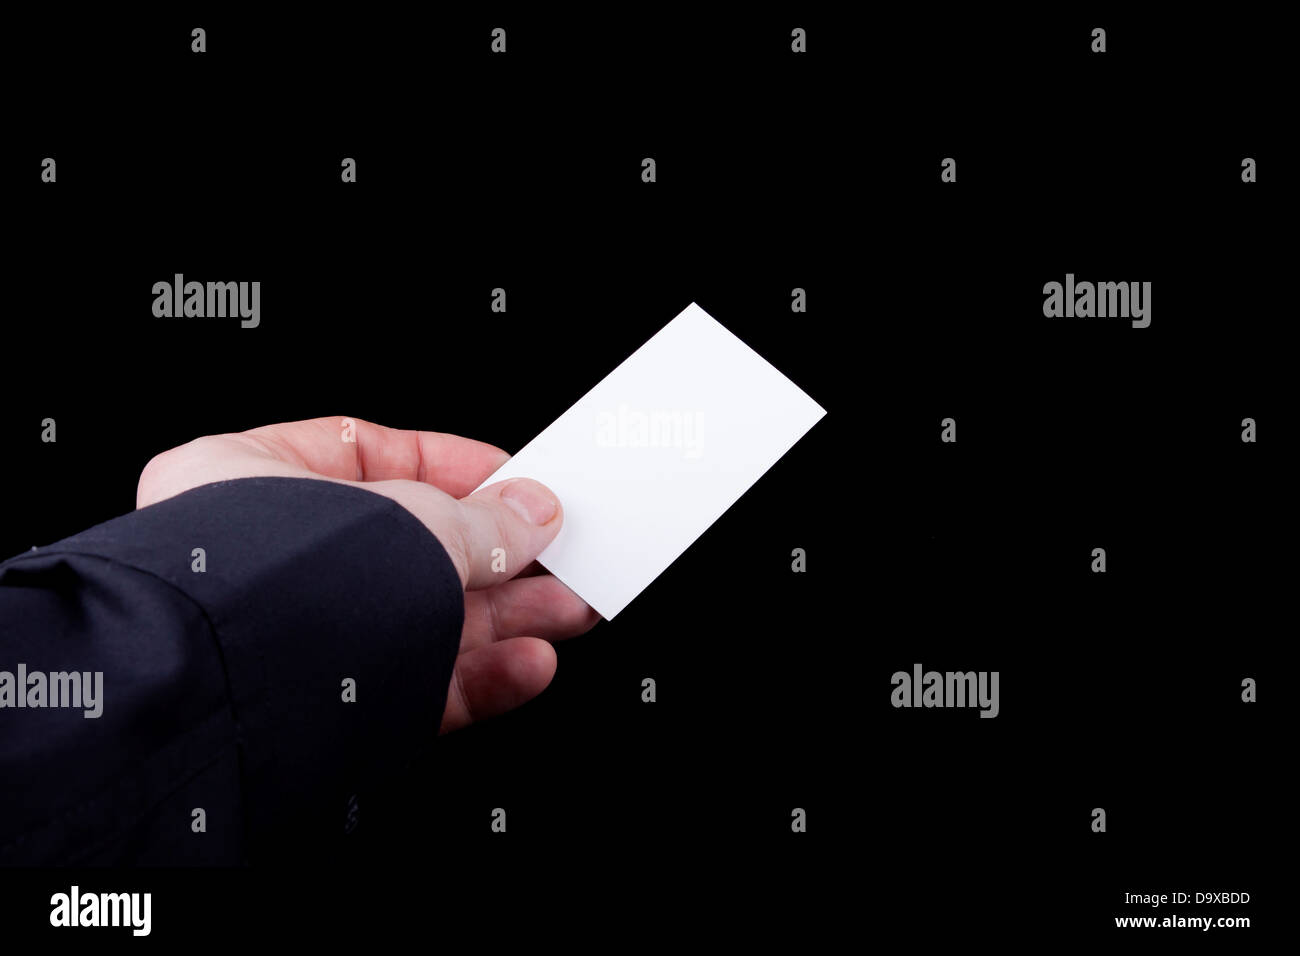 Man hand holding a blank business card Stock Photo: 57742761 - Alamy